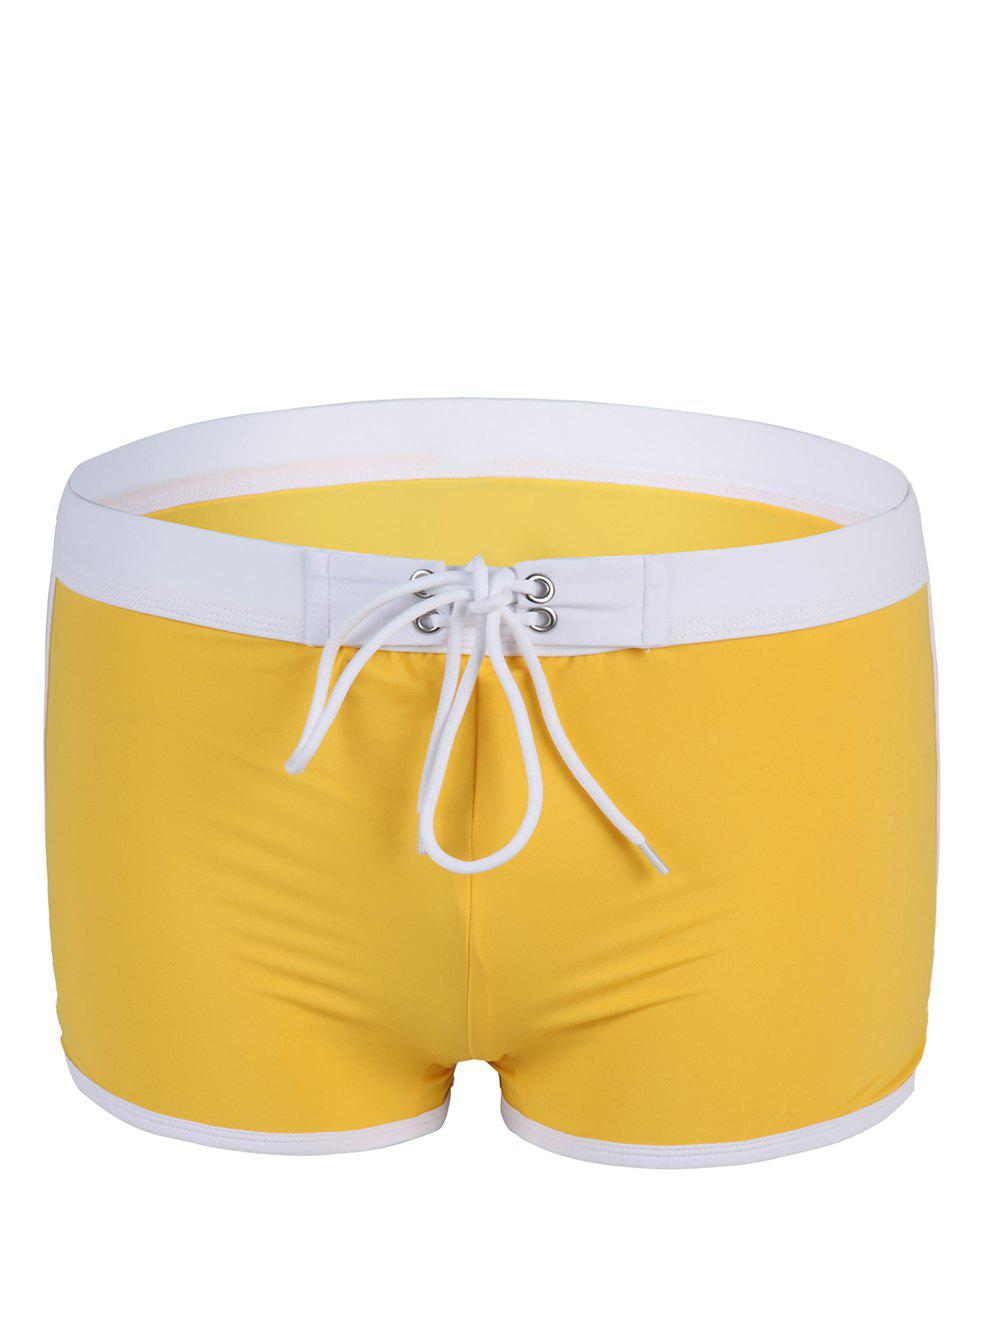 Fashion Low Waist Color Block Lace-Up Boxers Men's Swimming Trunks